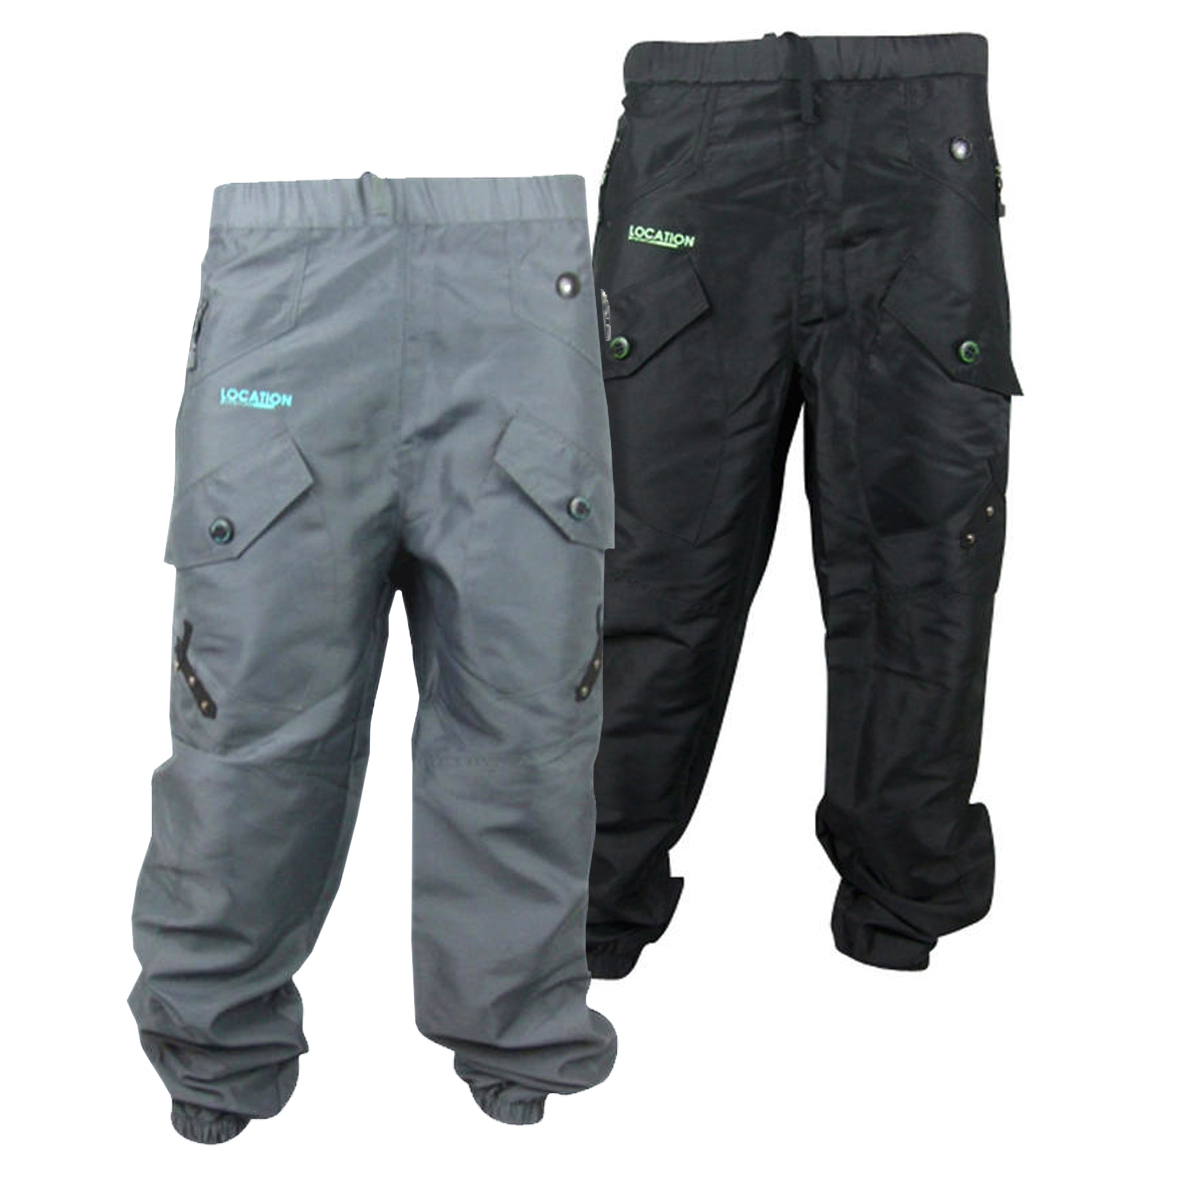 Mens Location Cargo Style Tracksuit Track Pants Cuffed Bottoms ...